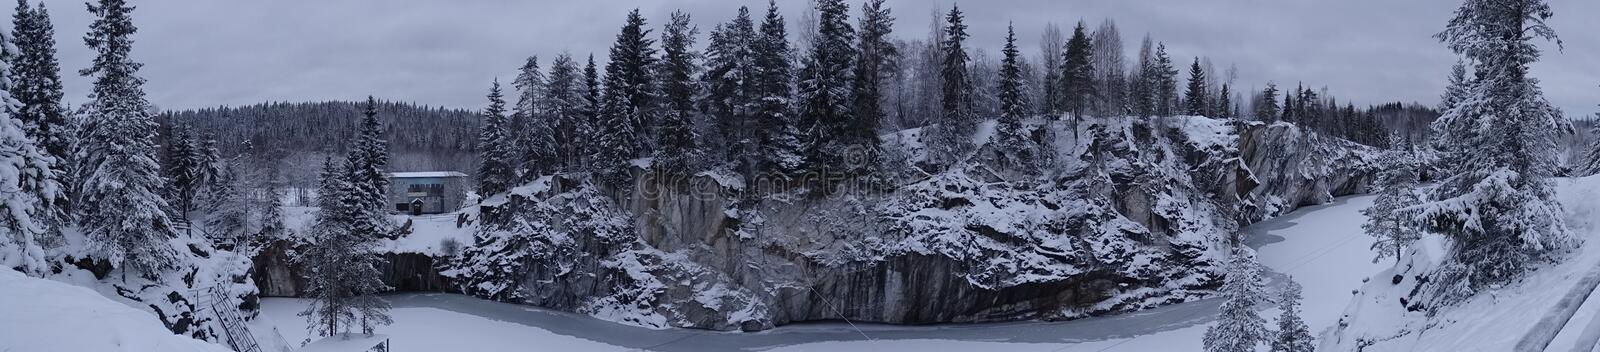 Ussia. The journey to Russia. Karelia. Russia. The journey to Russia. Karelia. Skerries. Winter. The beauty of nature. The places of power. Ruskeala mountain royalty free stock images